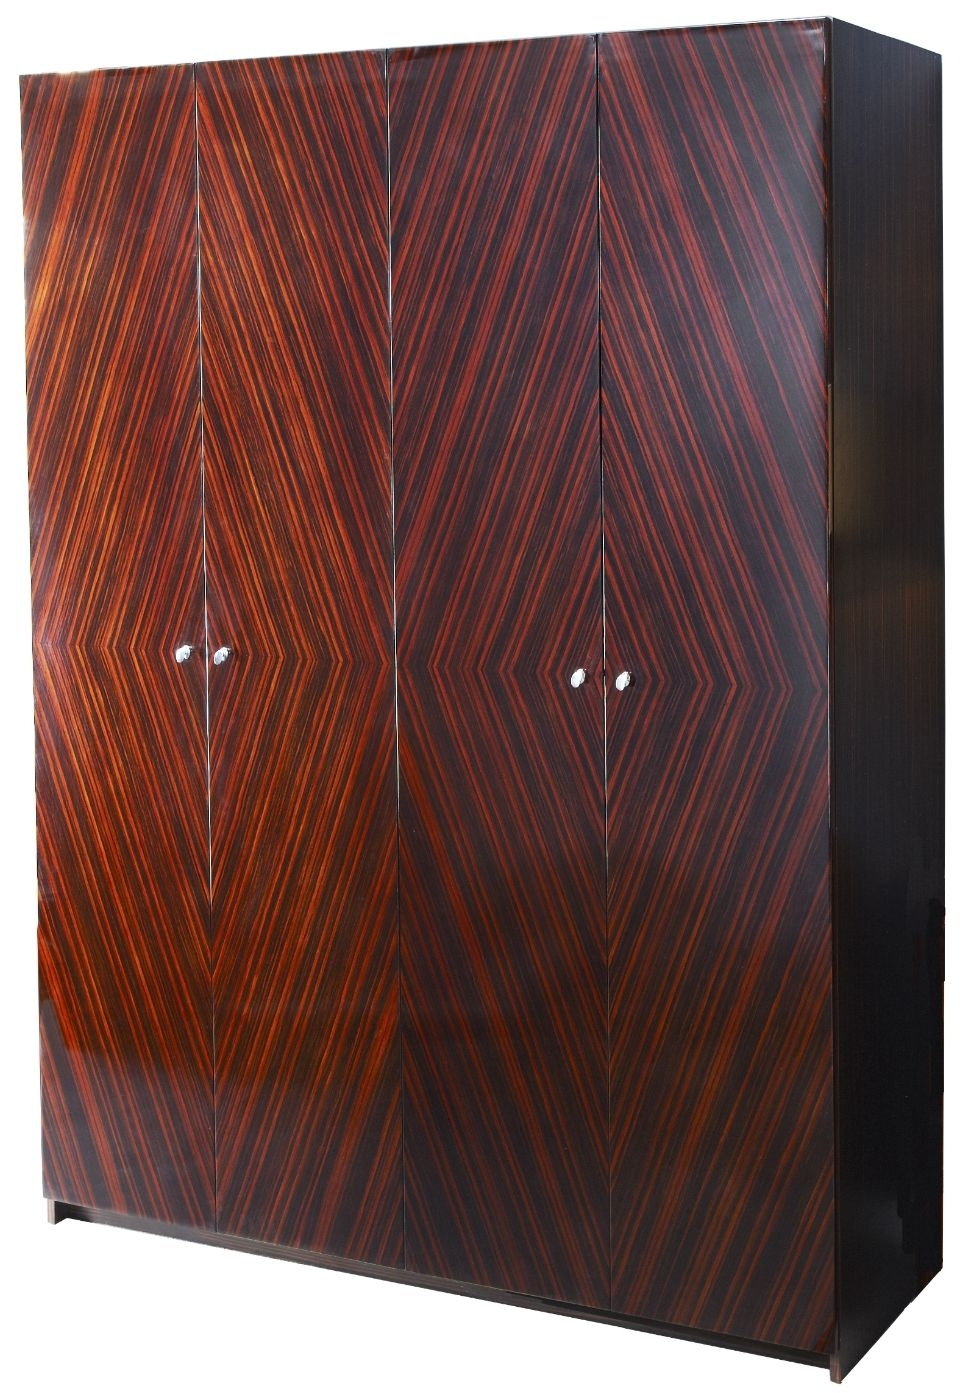 RV Astley Lymn Ebony Lacquered and MDF 4 Door Wardrobe